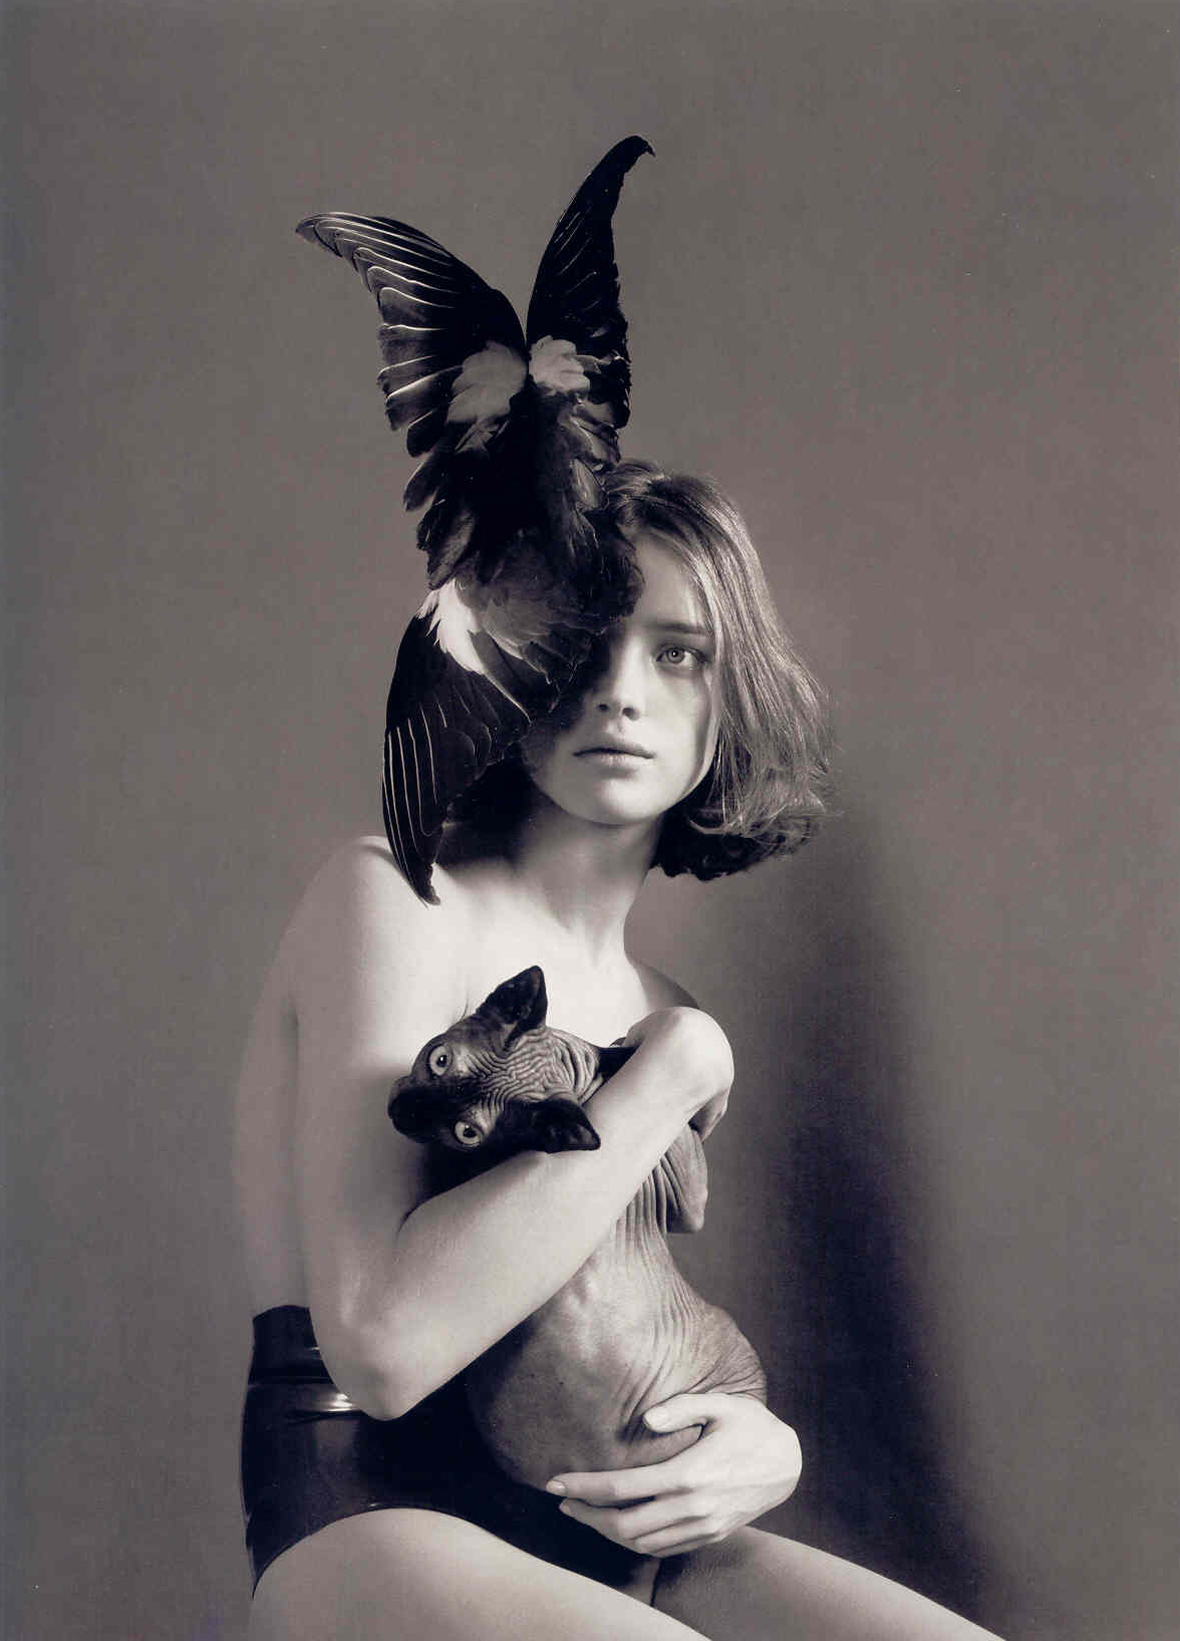 """Call of the Wild""   with Natalia Vodianova + Mert & Marcus + W Magazine   Frocks = Alexander McQueen"